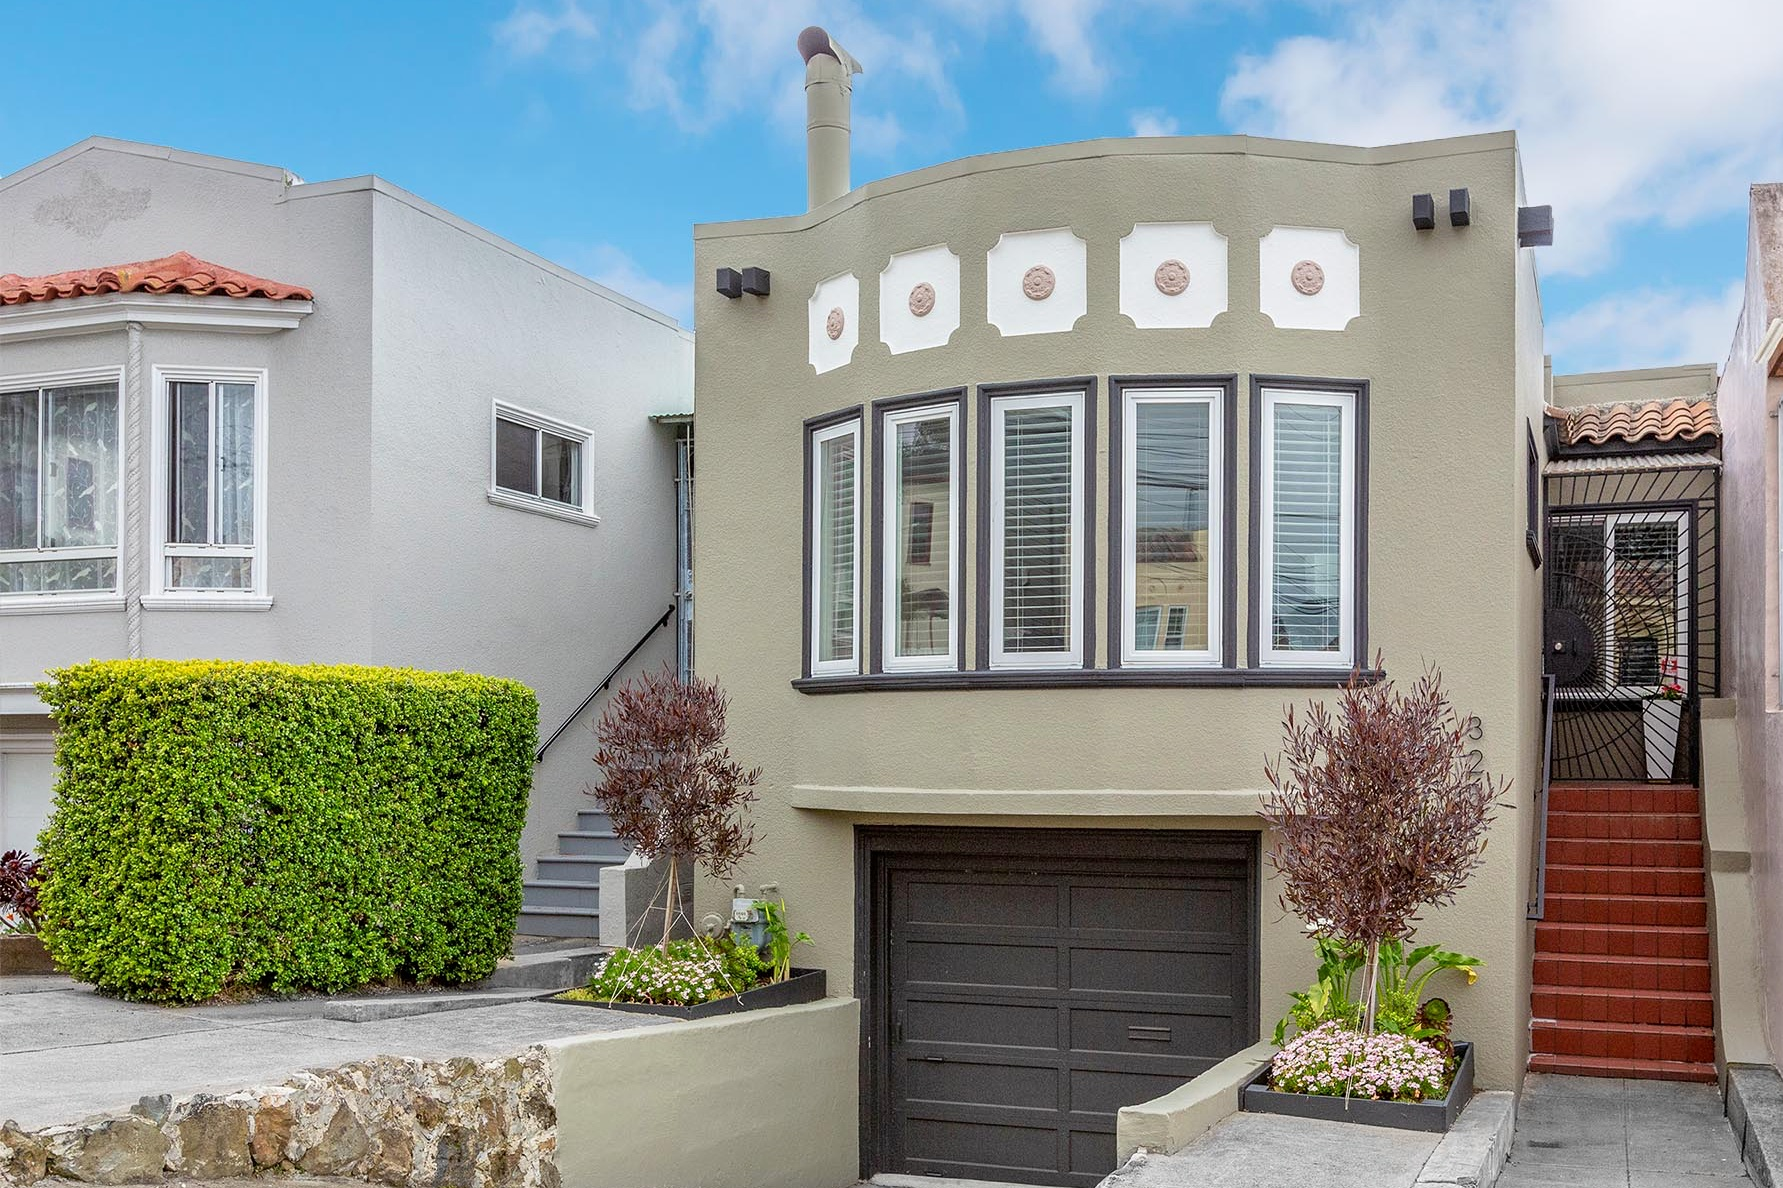 Sold San Francisco Home at 323 Byxbee Street by Alek Keytiyev Realtor